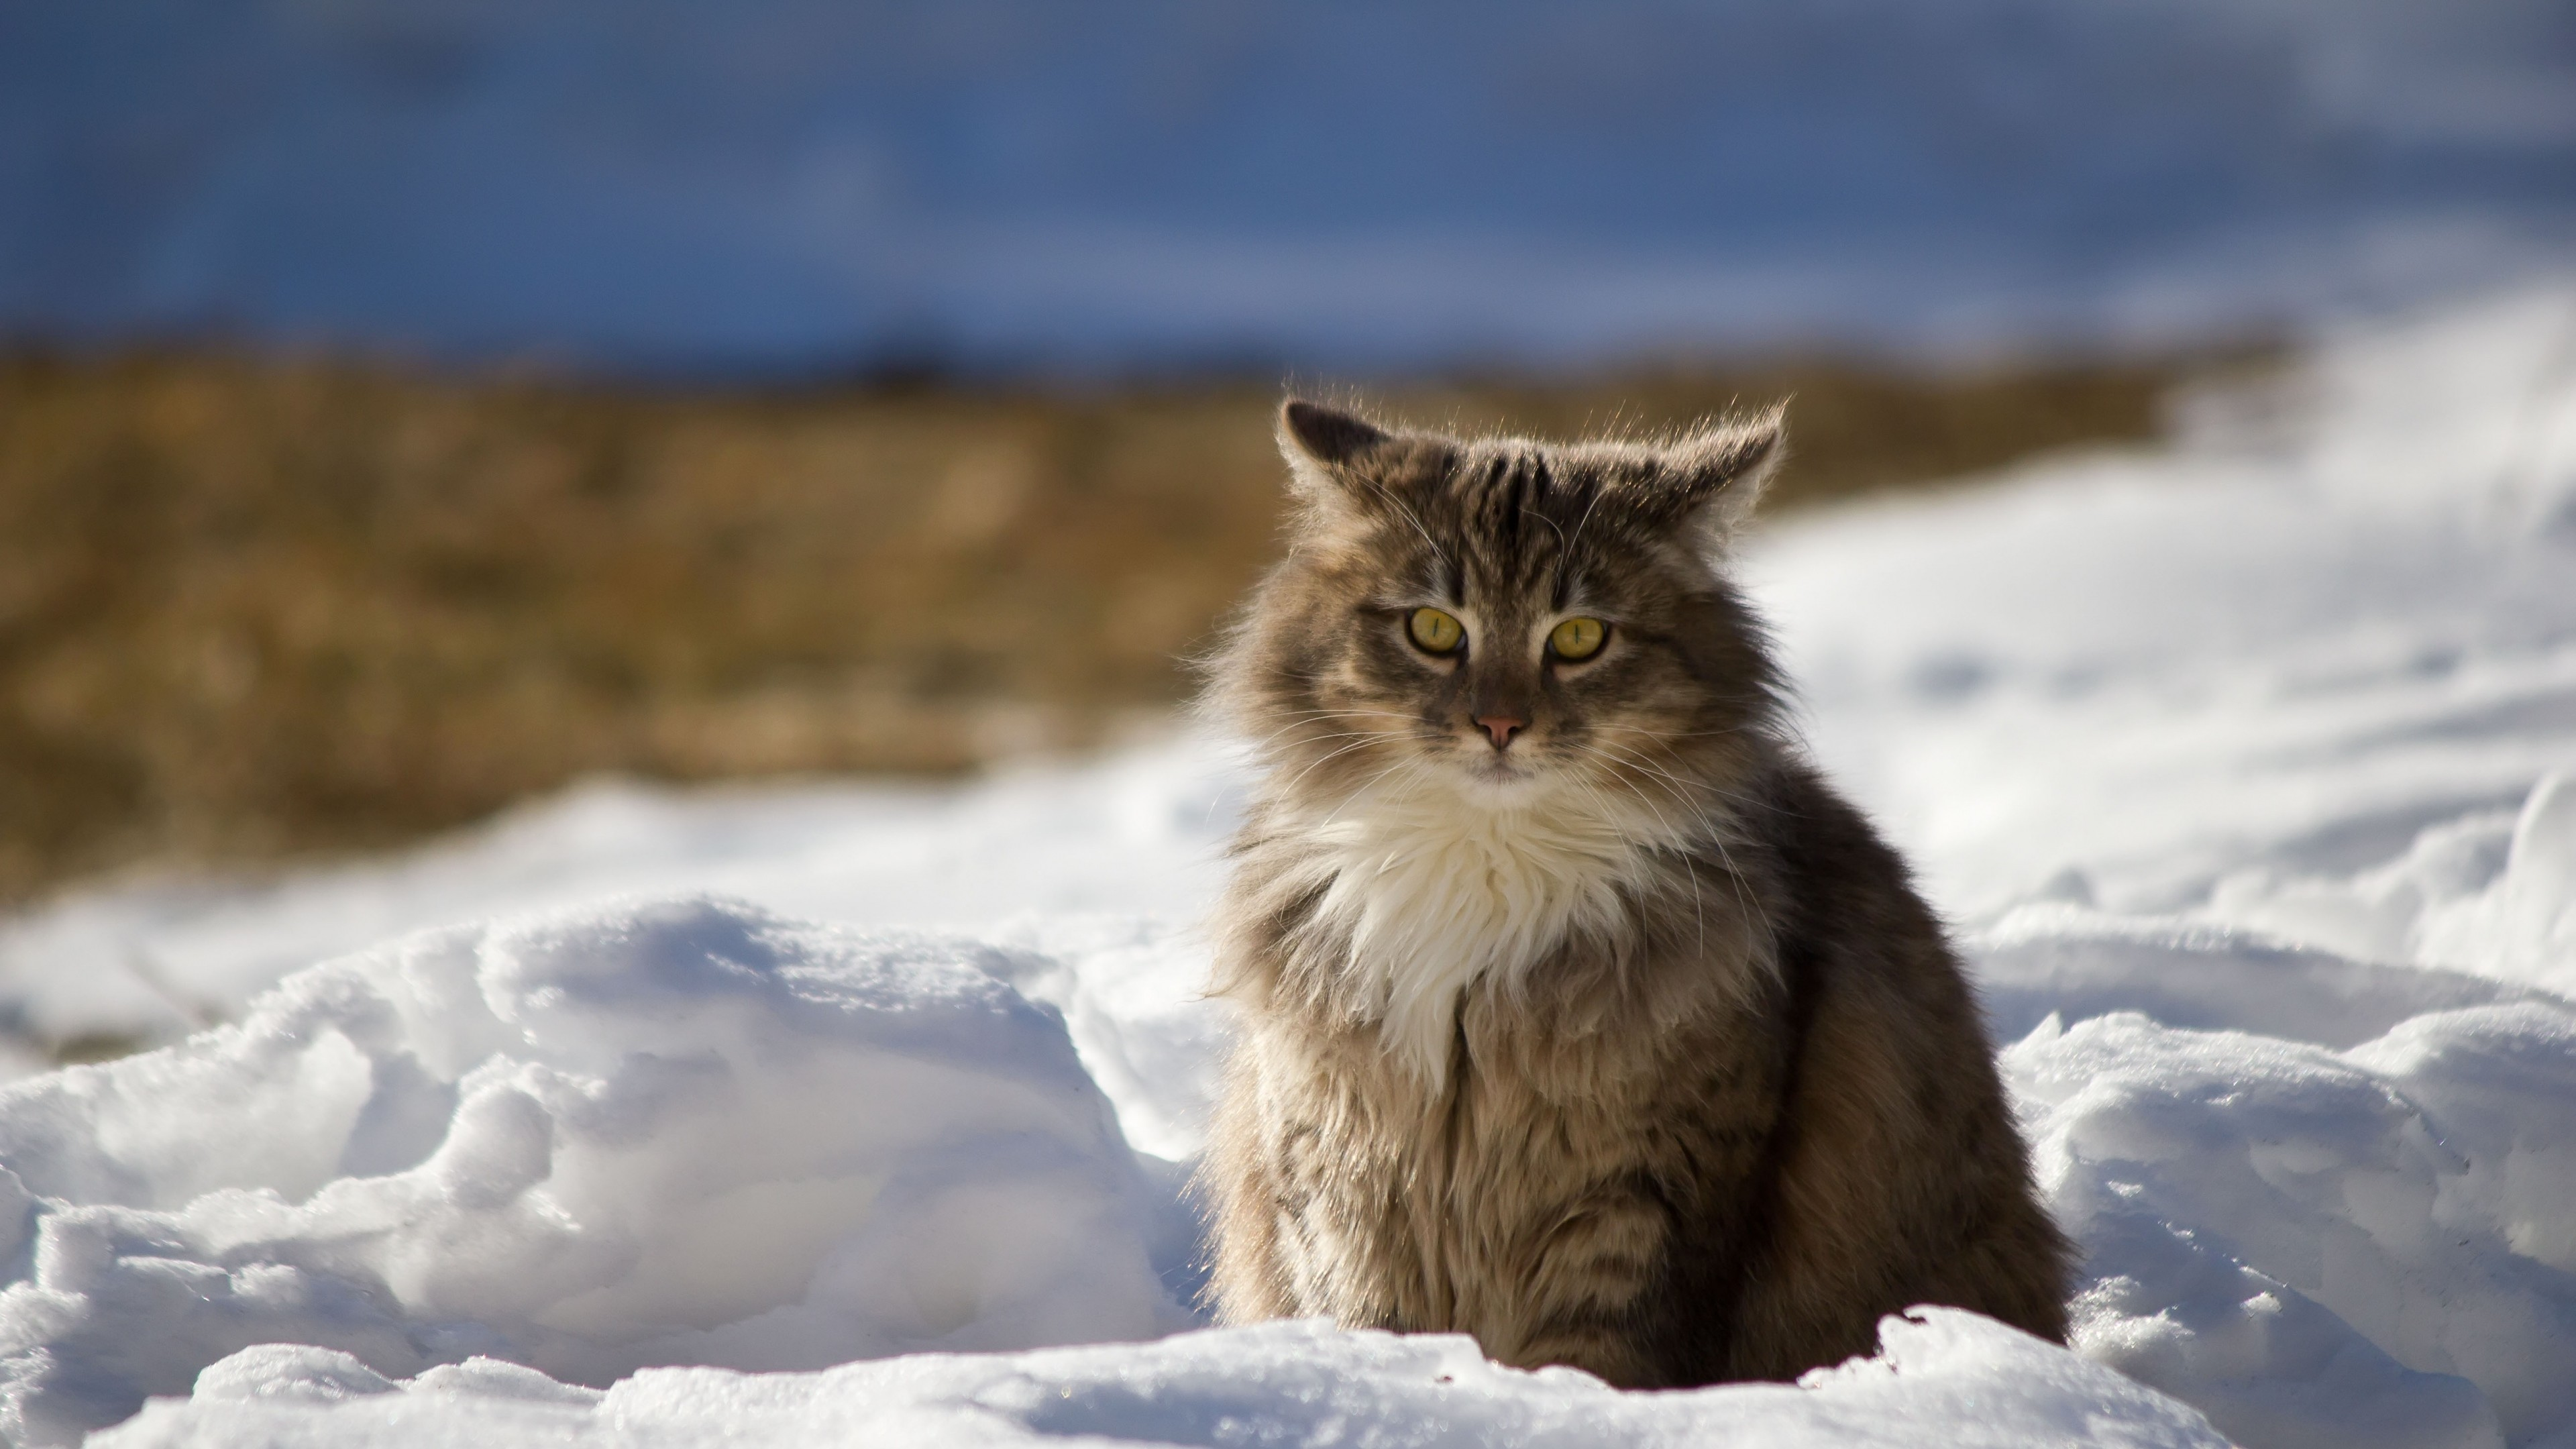 3840x2160 Preview wallpaper cat, winter, fluffy, snow